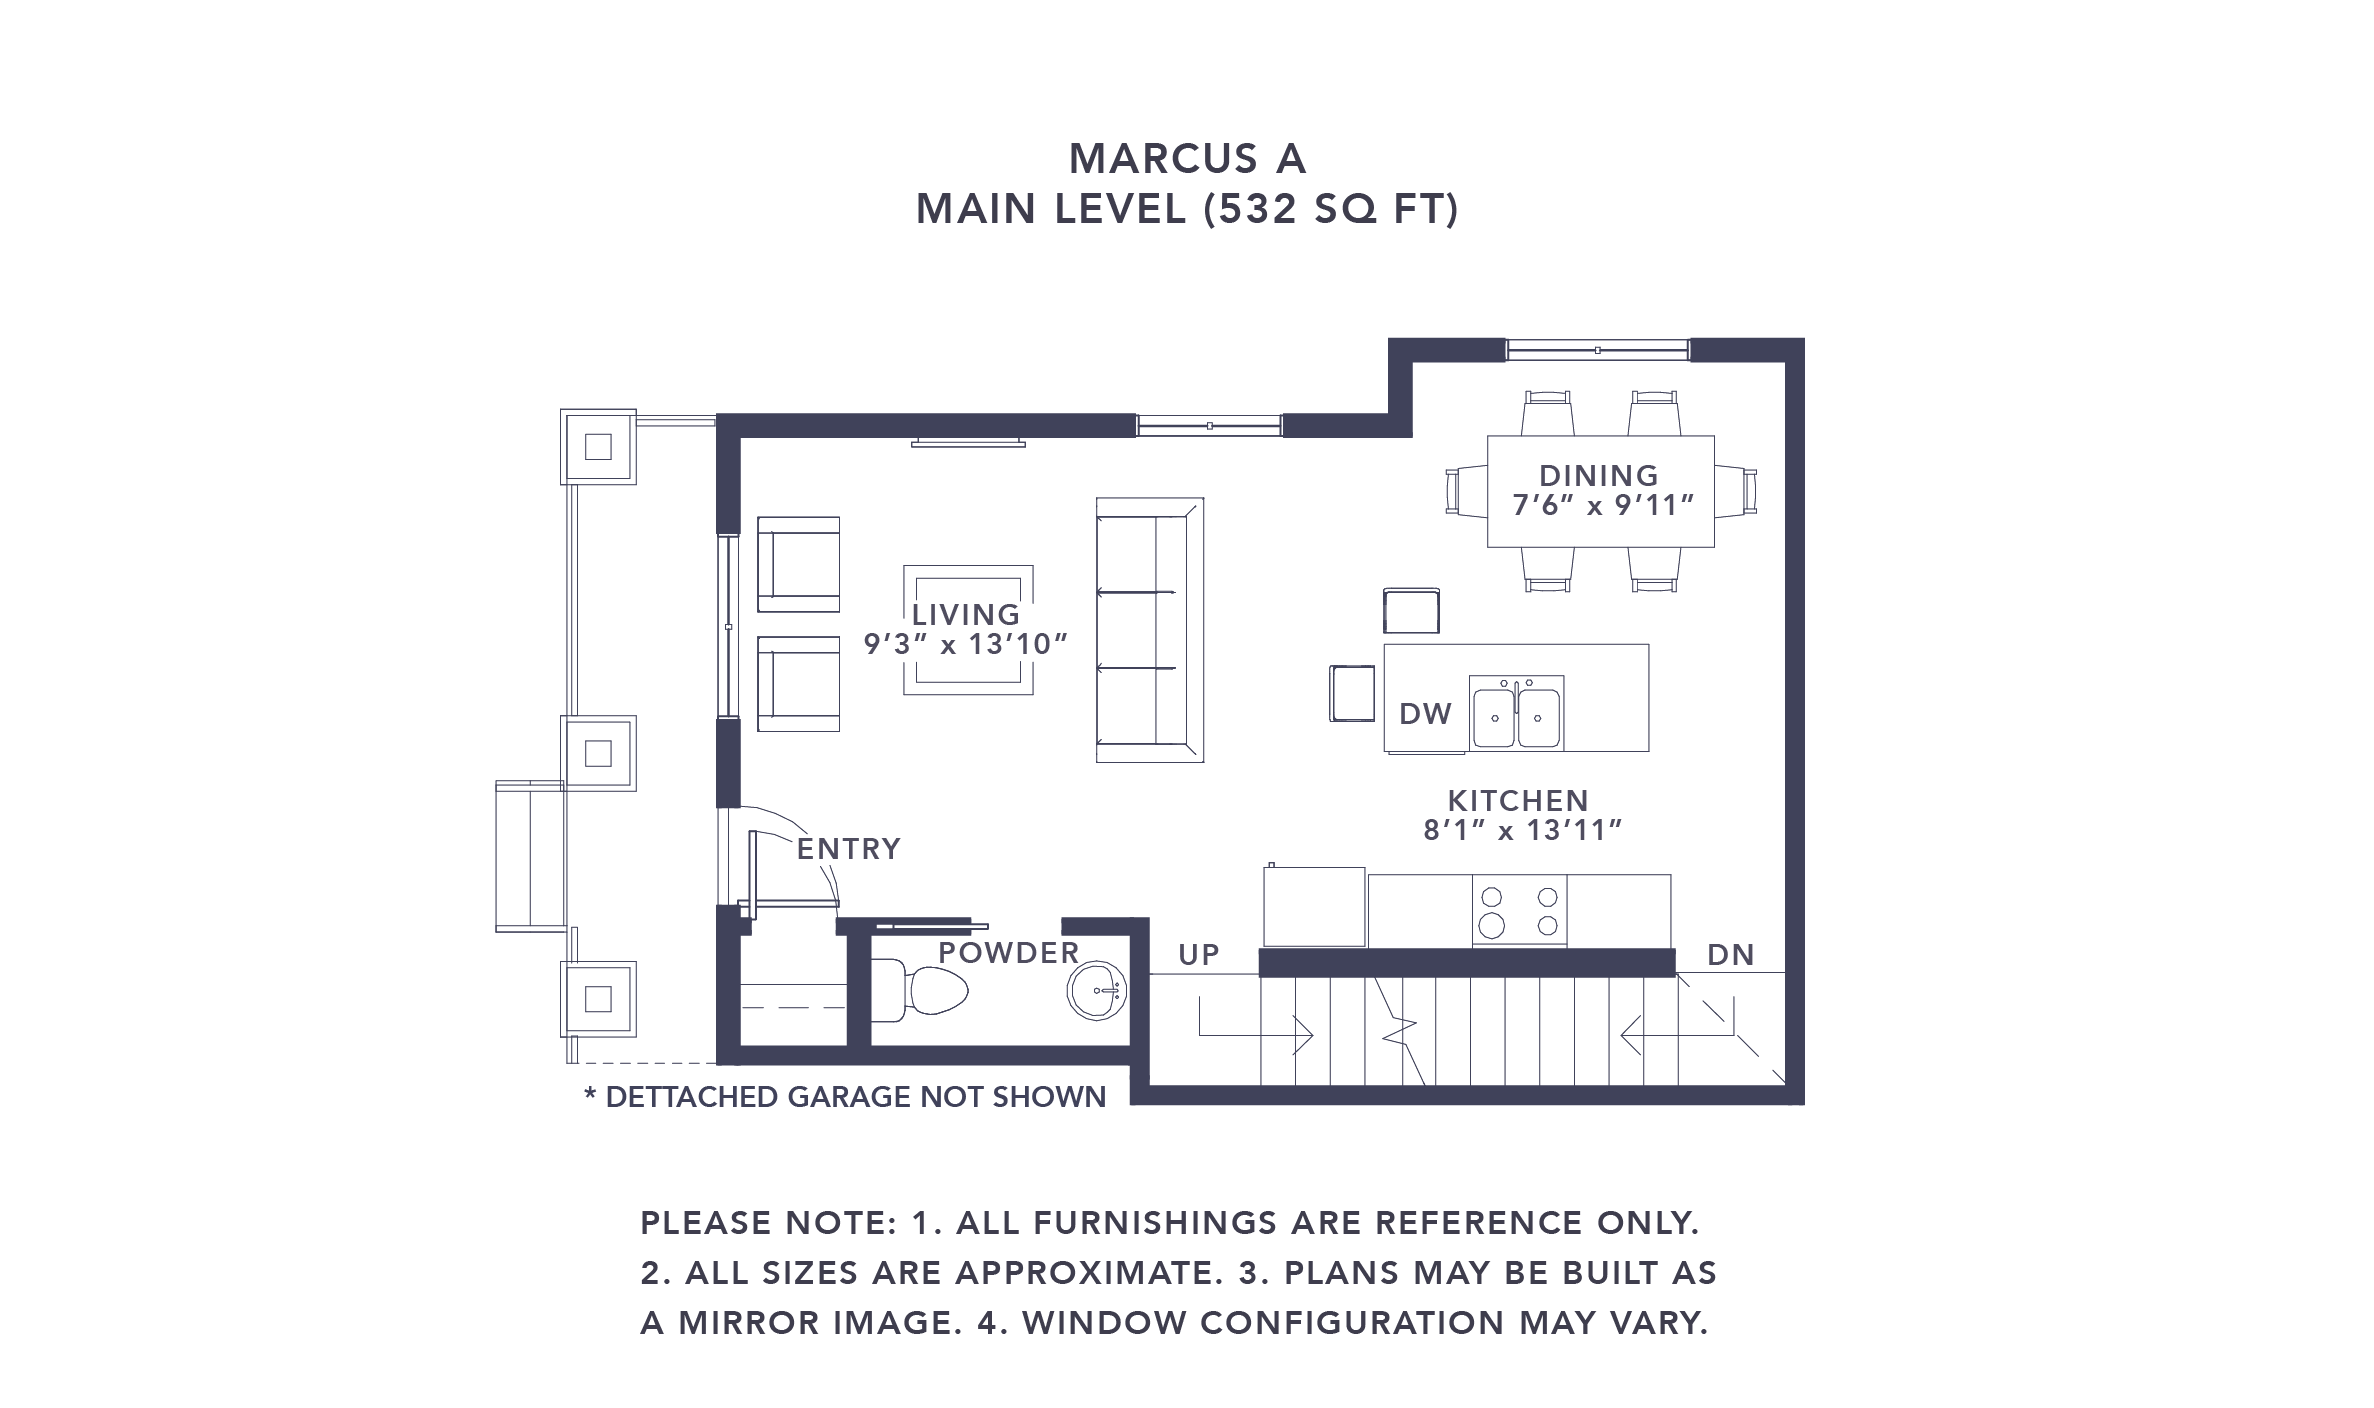 Airdrie Townhome Floorplan Marcus A